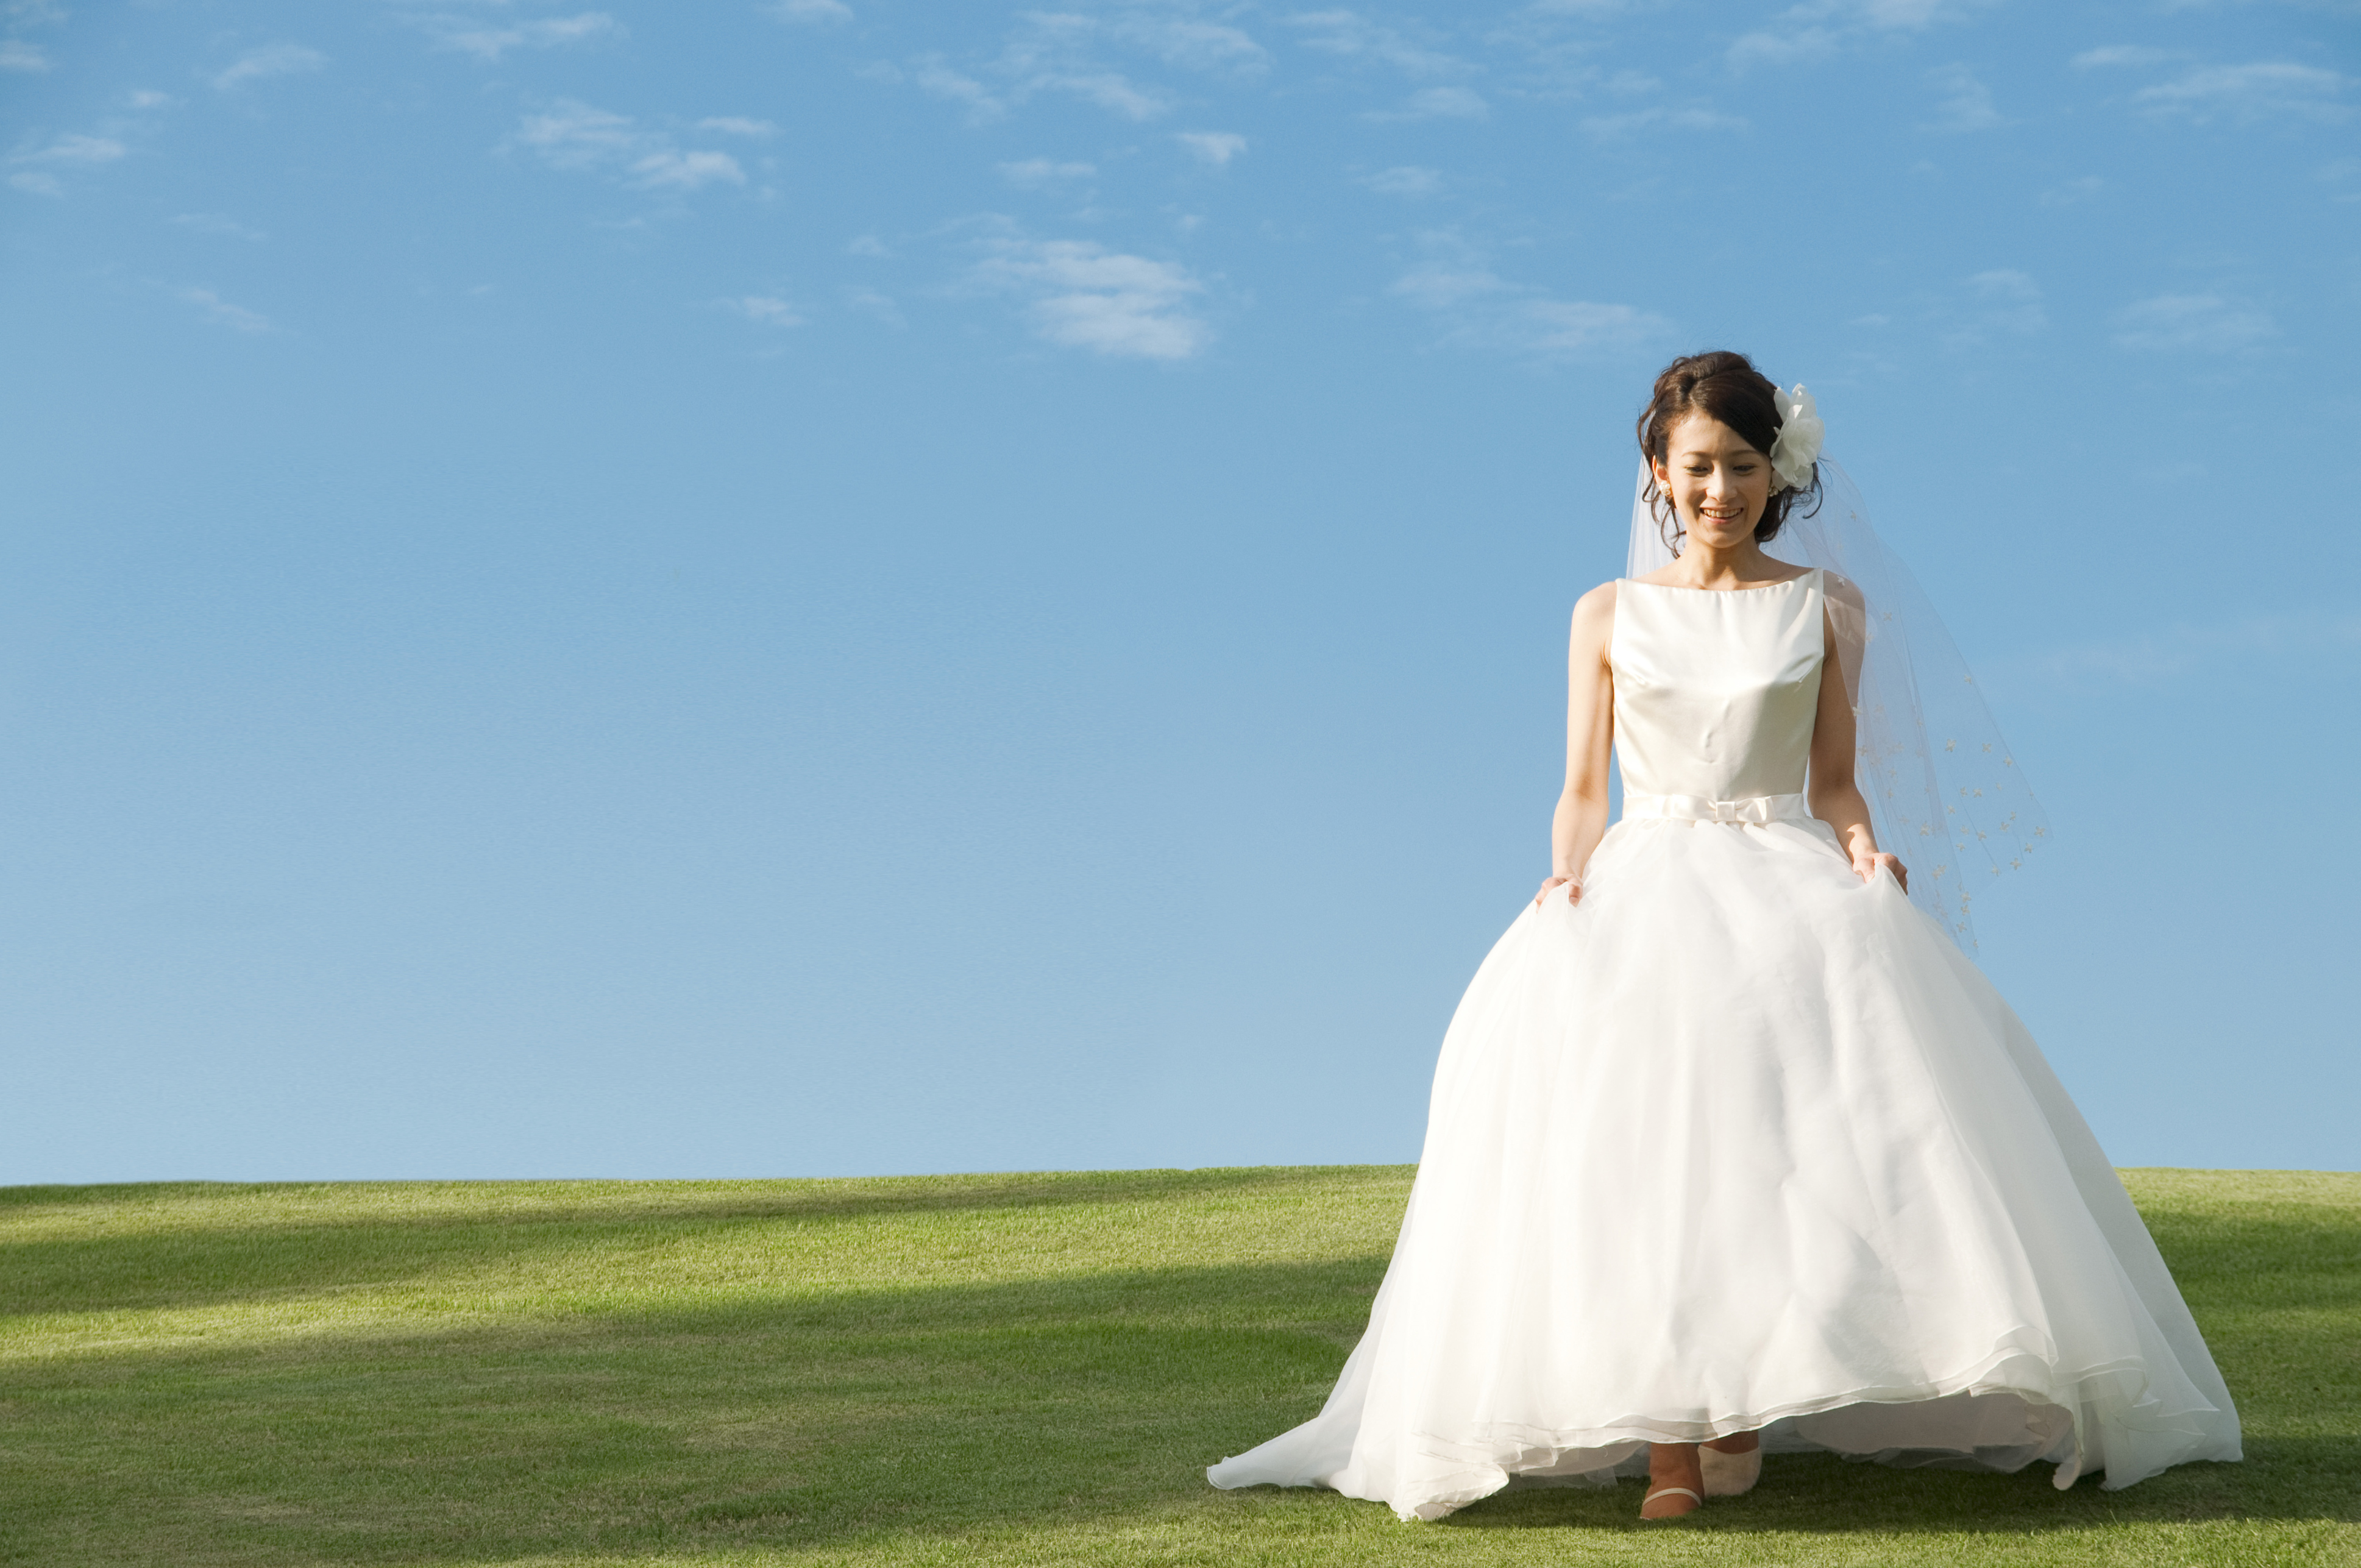 edc552d01597 Wedding gowns - style of skirt - Articles - Easy Weddings